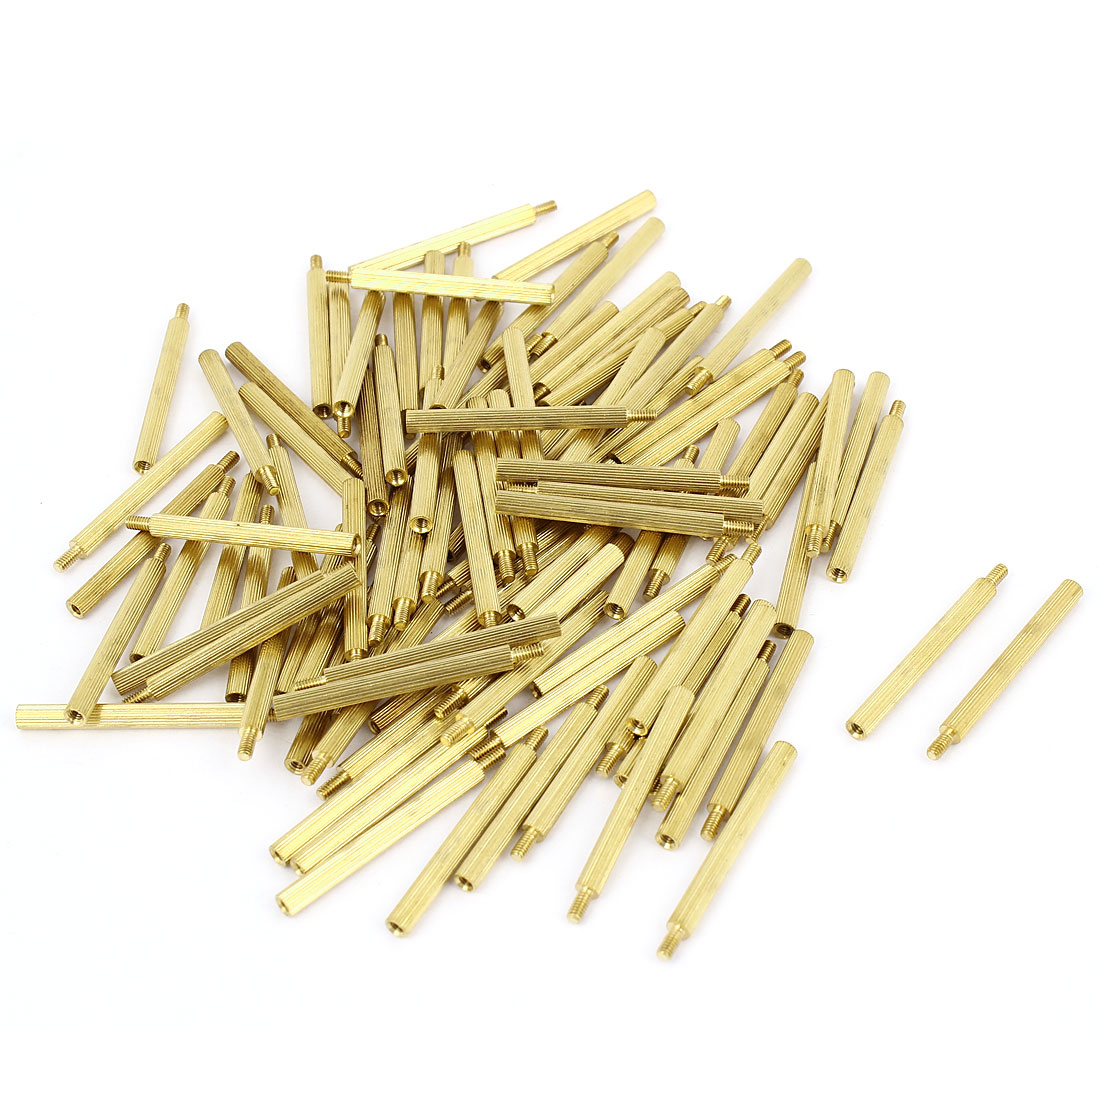 100Pcs Male to Female Thread PCB Board Brass Pillars Standoff M2x30mm